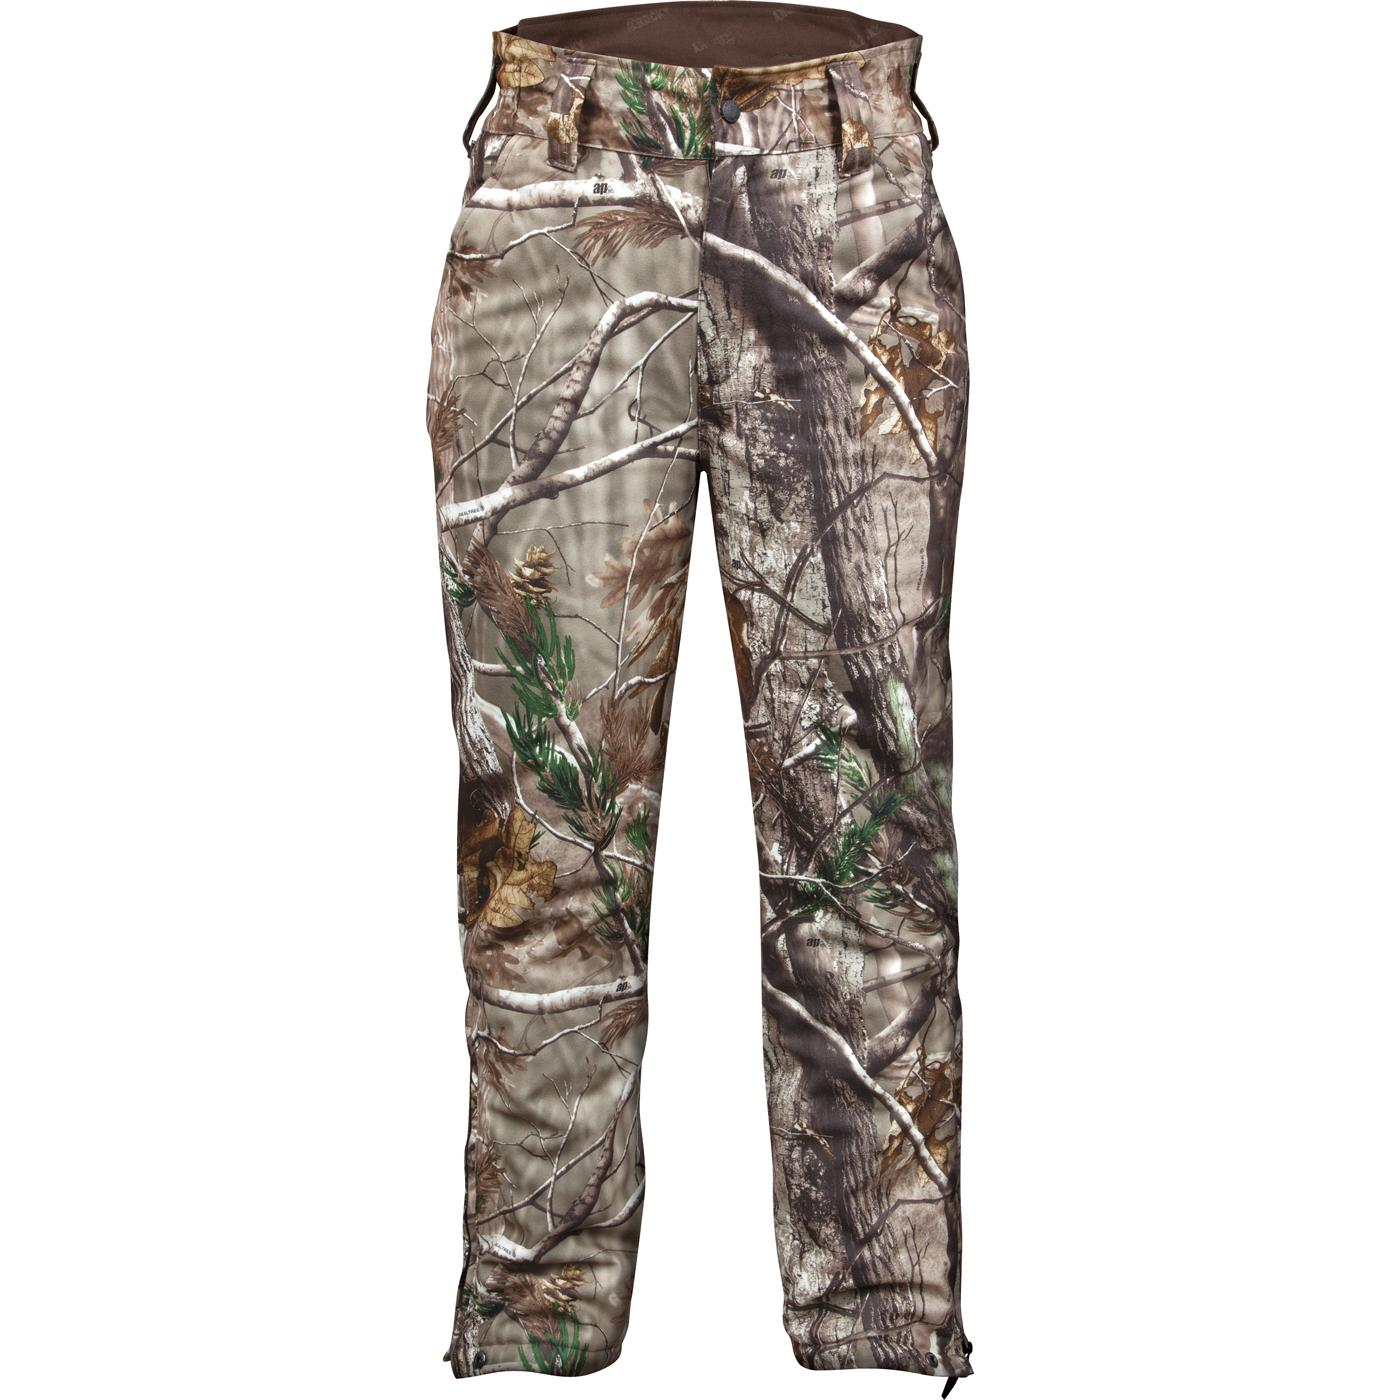 Fantastic  About Womens Ladies Army Woodland Forest Camo Yoga Snug Leggings Pants